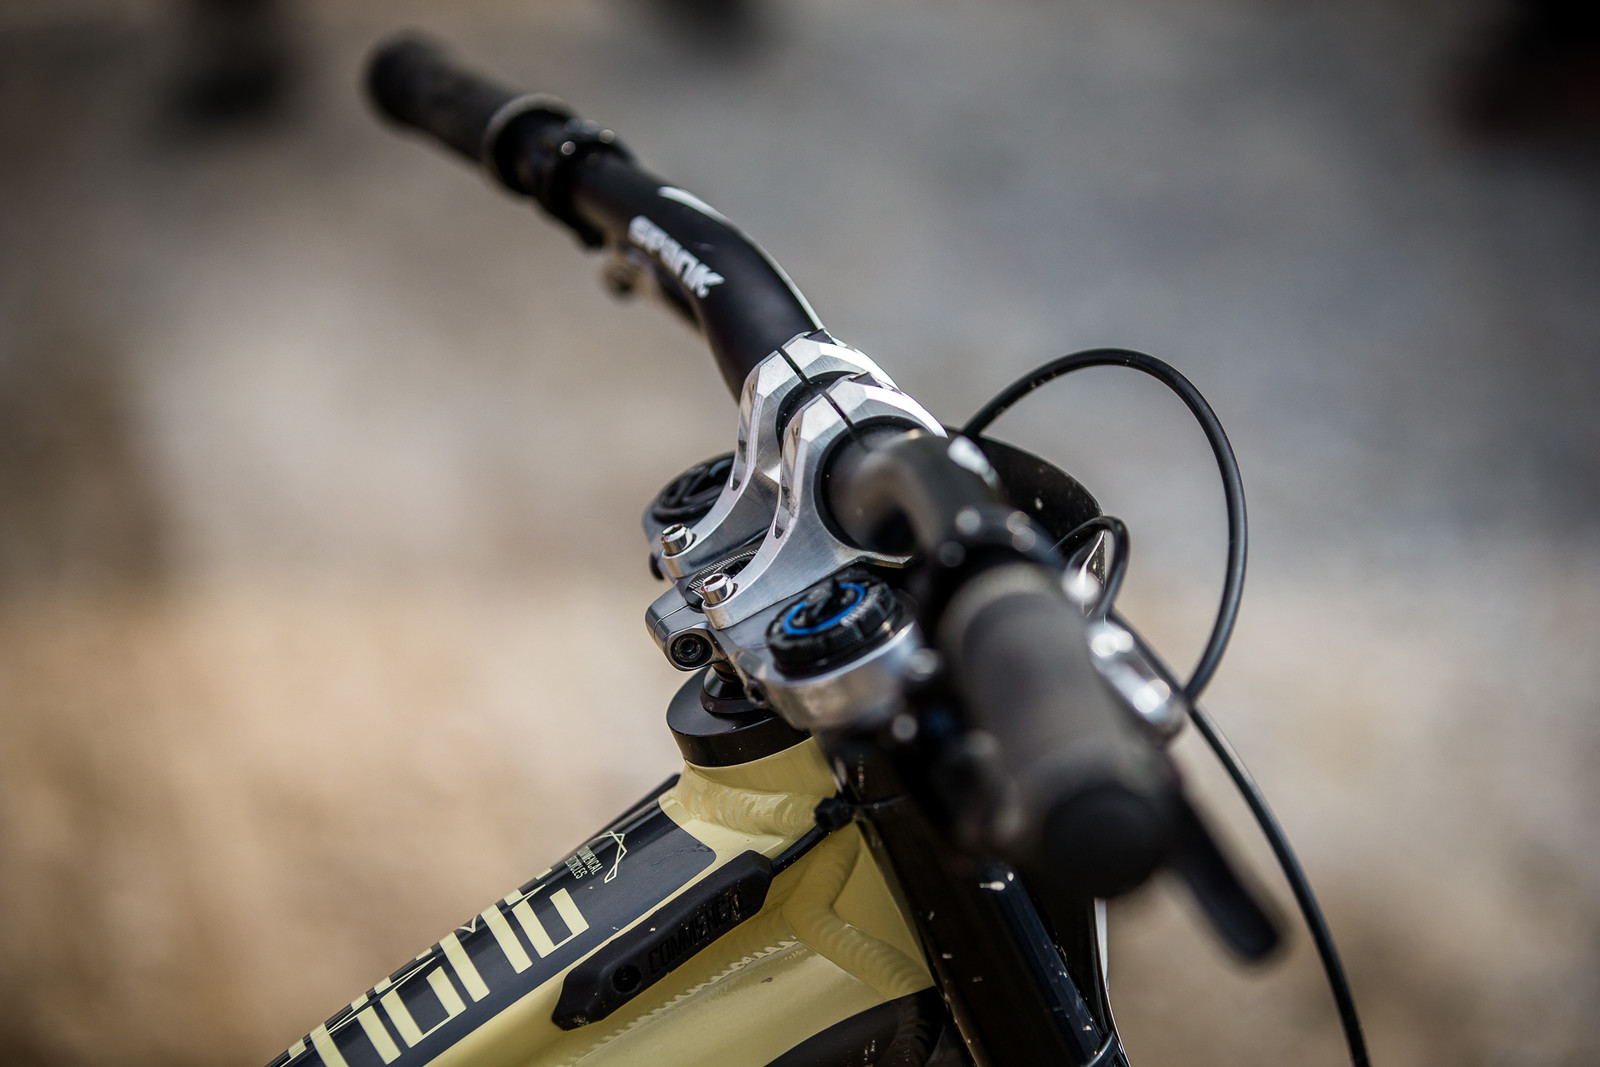 Custom Stem? - WINNING BIKE - Amaury Pierron's Commencal Supreme DH 29 - Mountain Biking Pictures - Vital MTB